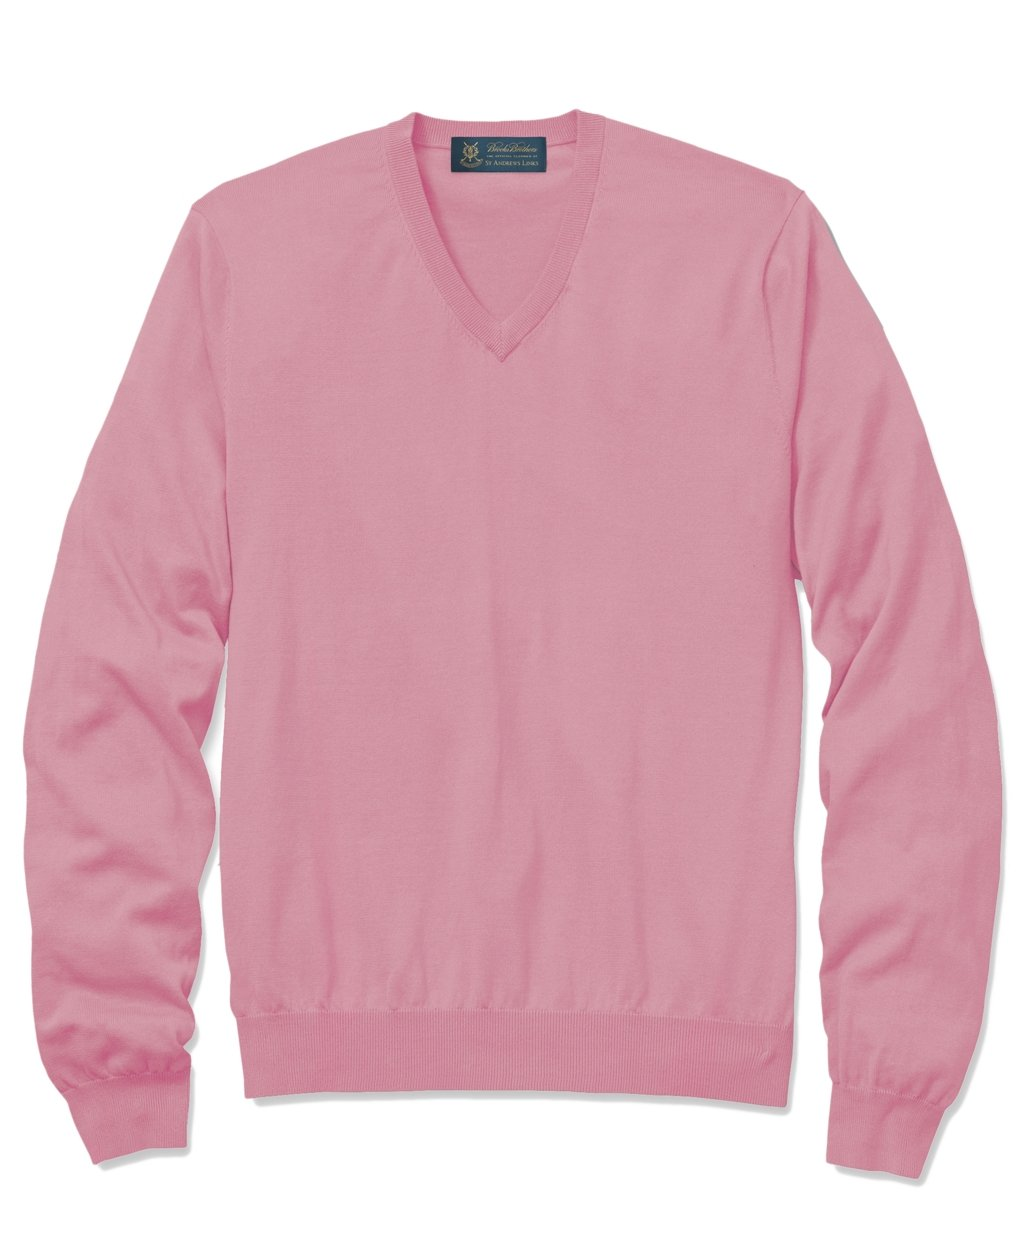 Find mens pink v neck t shirt at ShopStyle. Shop the latest collection of mens pink v neck t shirt from the most popular stores - all in one place.